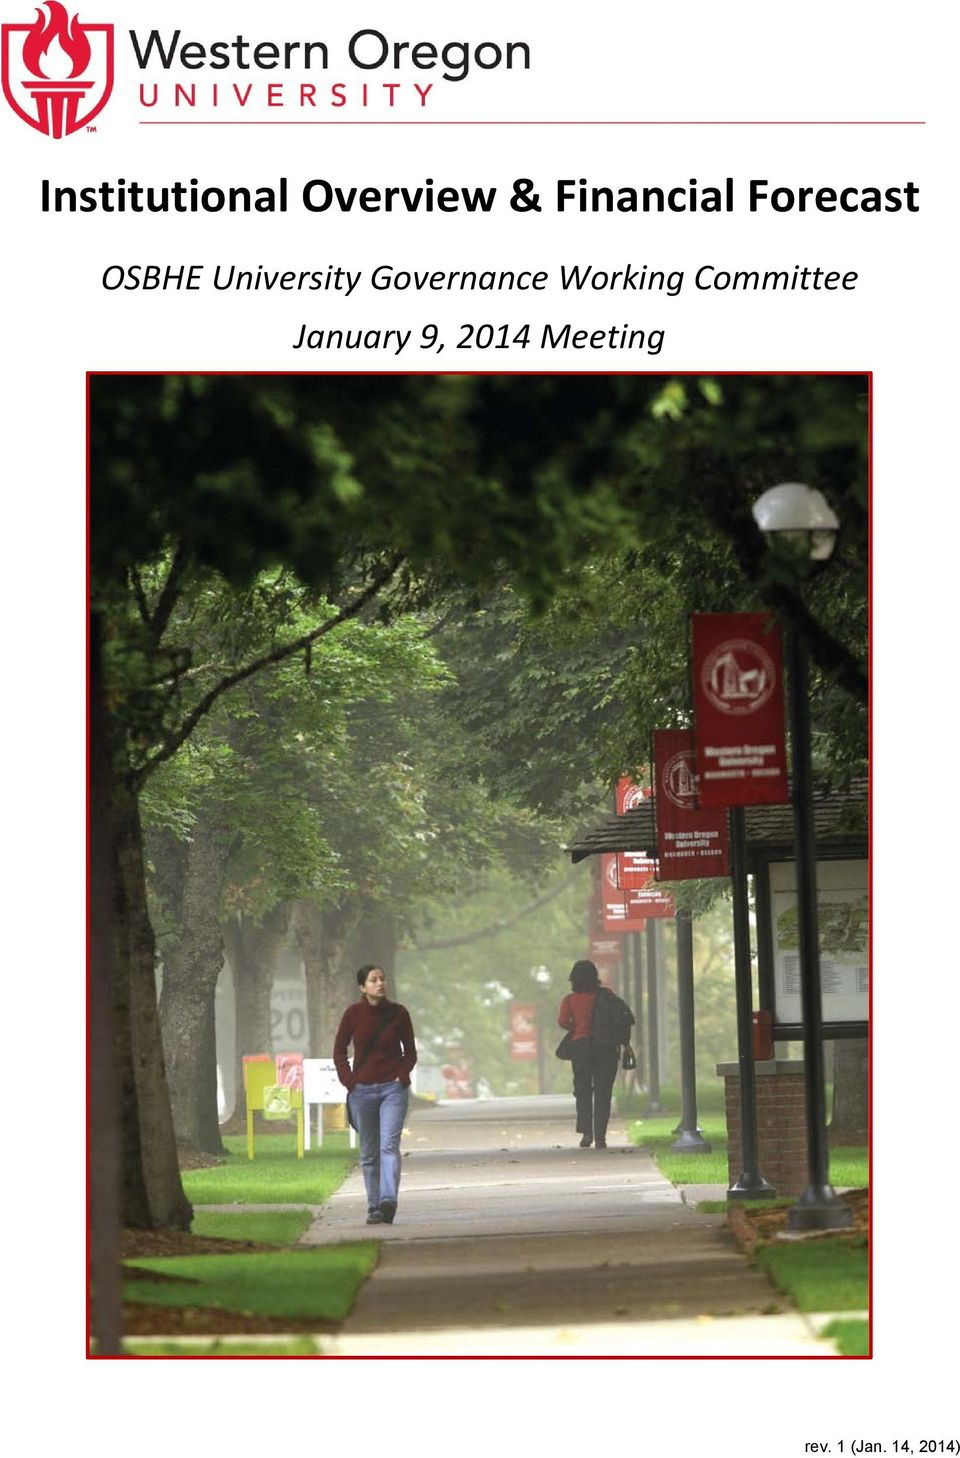 University Governance Working